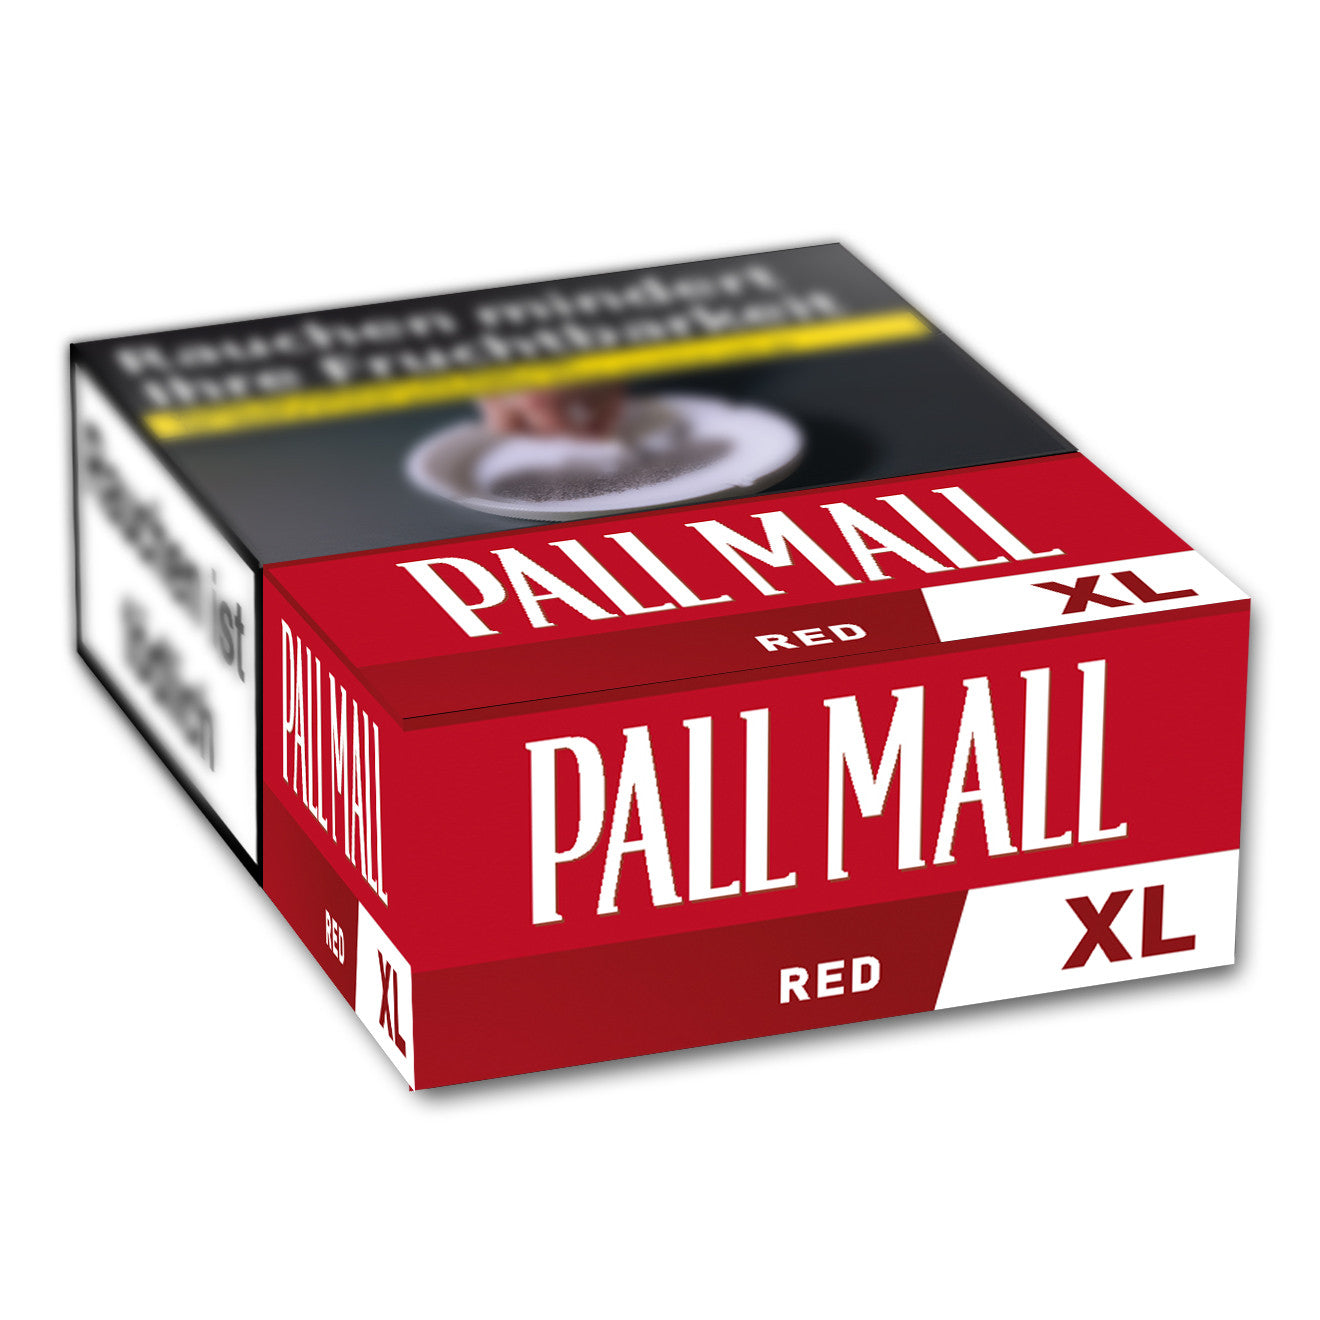 PALL MALL Red Edition Automatenpackung 6,50 Euro (20x21)